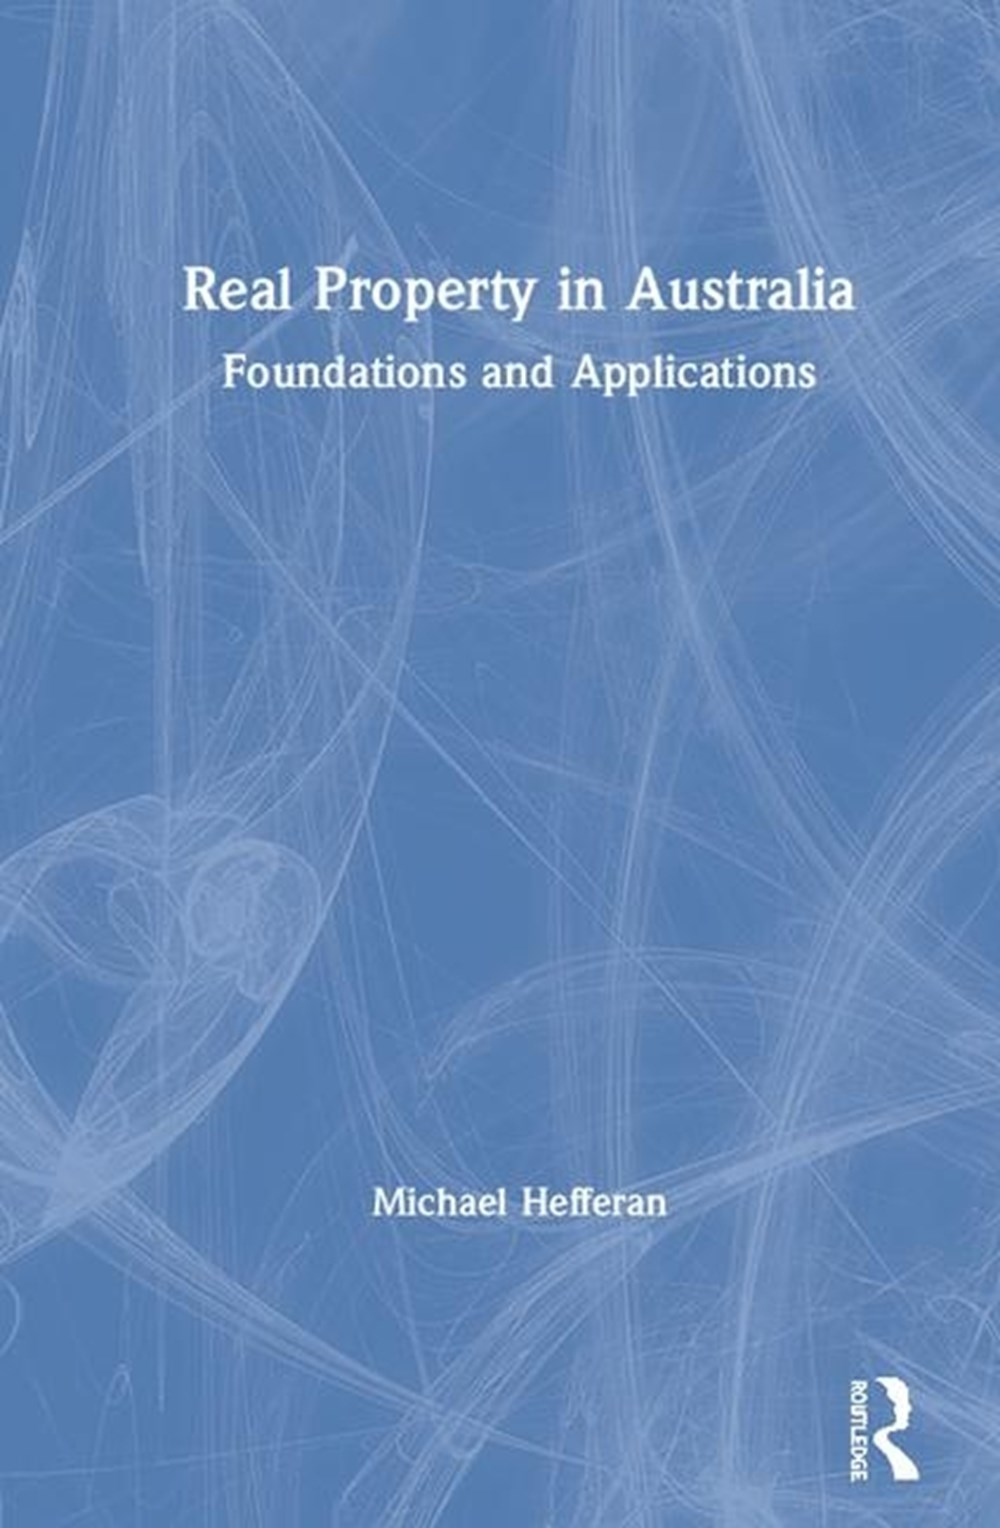 Real Property in Australia Foundations and Applications